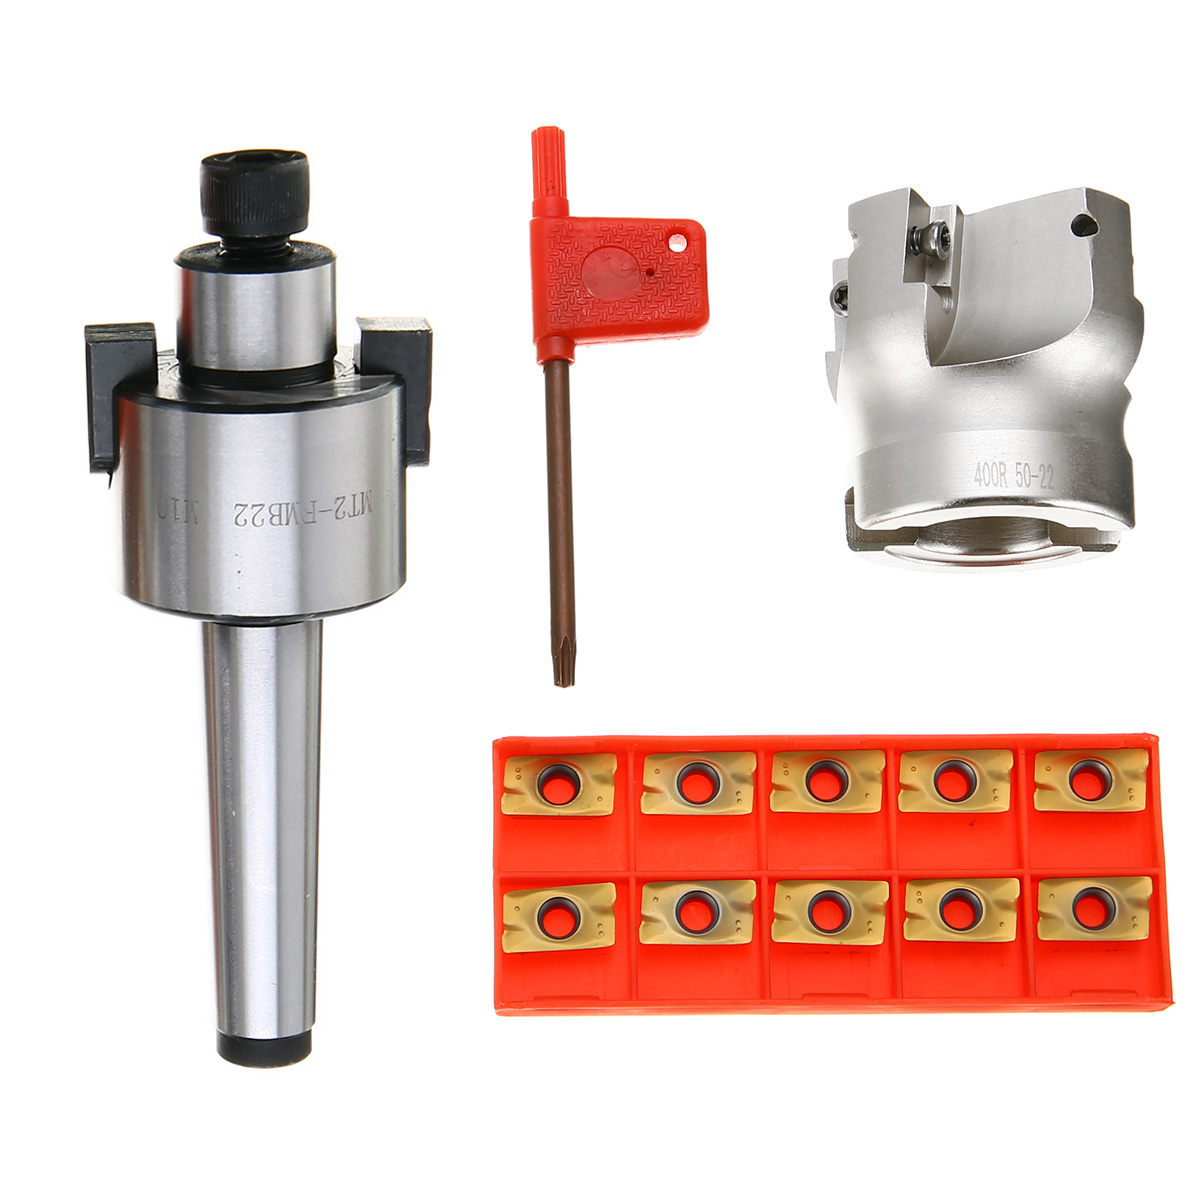 1 Set Metal Milling Cutter Tools MT2 400R 50mm Face End Mill Cutter + 10pcs APMT1604 Carbide Inserts with Wrench Spanner free shiping1pcs aju c10 10 100 10pcs ccmt060204 dia 10mm insertable bore drilling end mill cutting tools arbor for ccmt060204